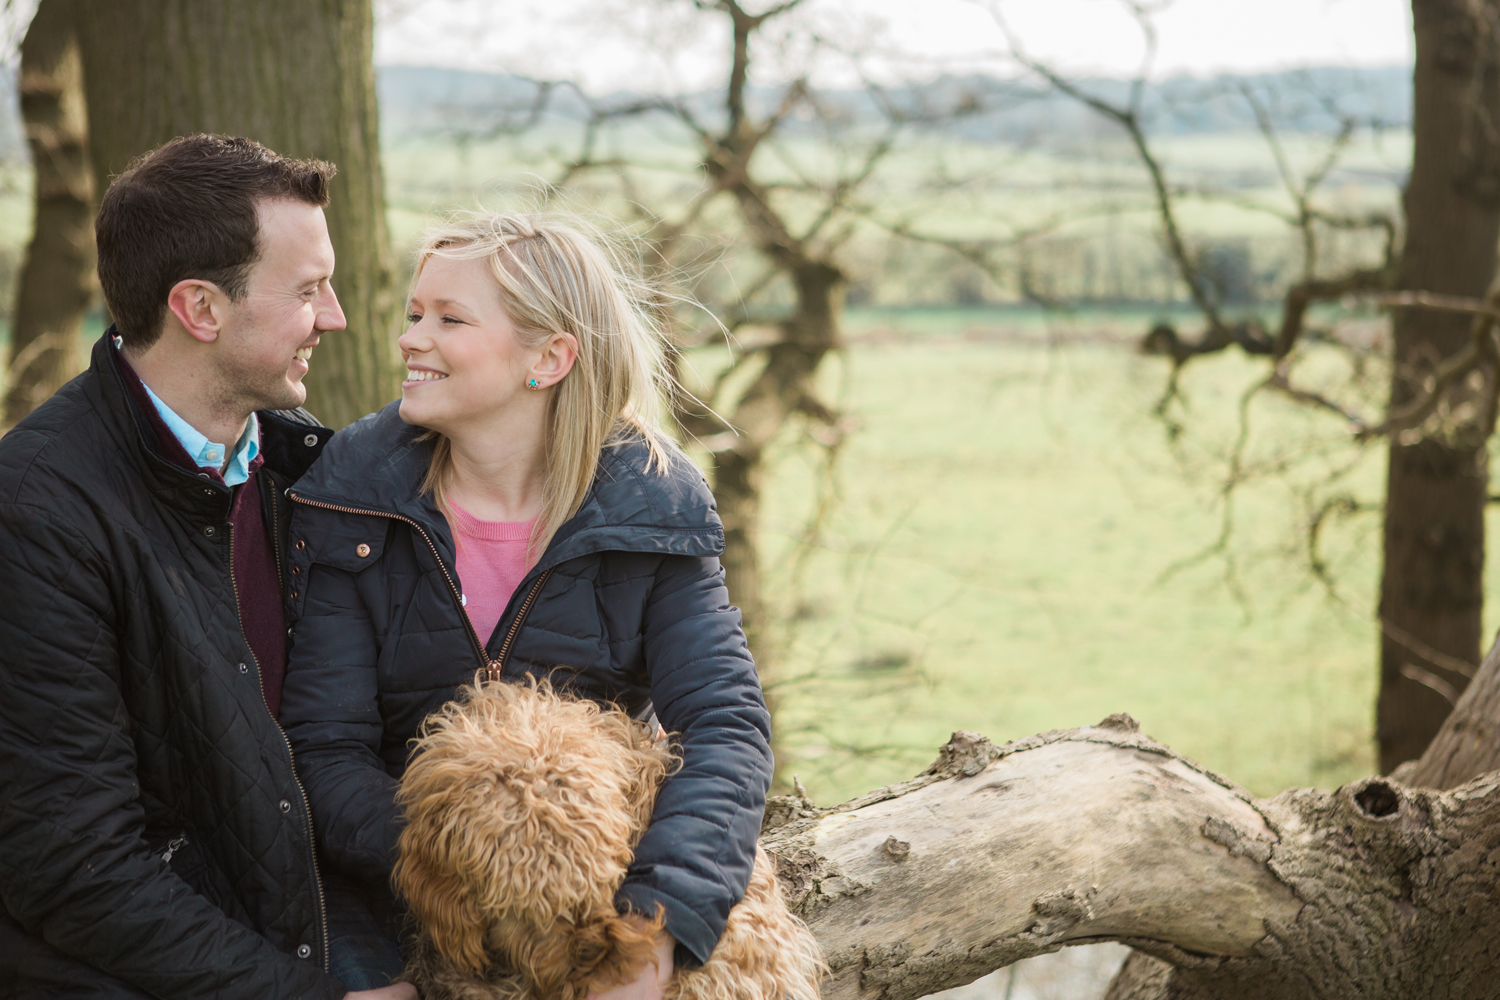 Sophie Evans Photography, Warwickshire Wedding Photography, Farm Engagement Shoot, Emma & Gus_018.jpg